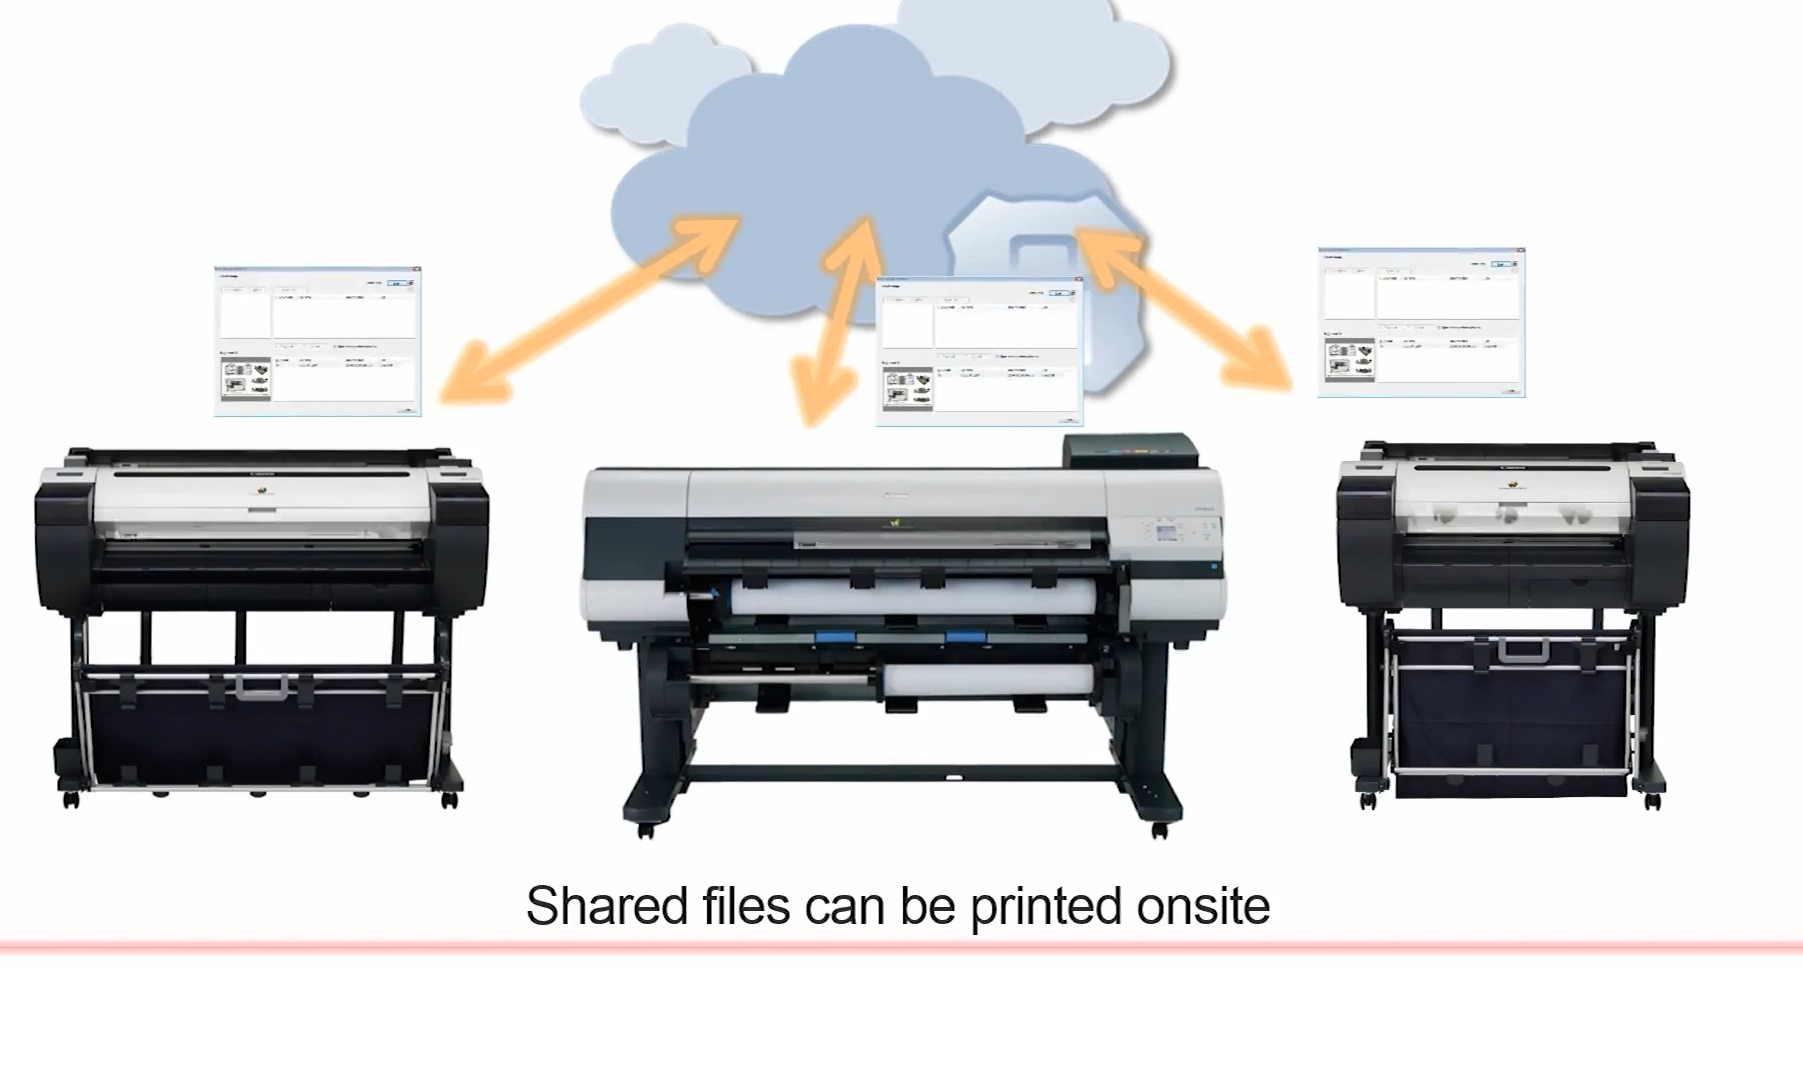 Direct Print and Share Features graphic